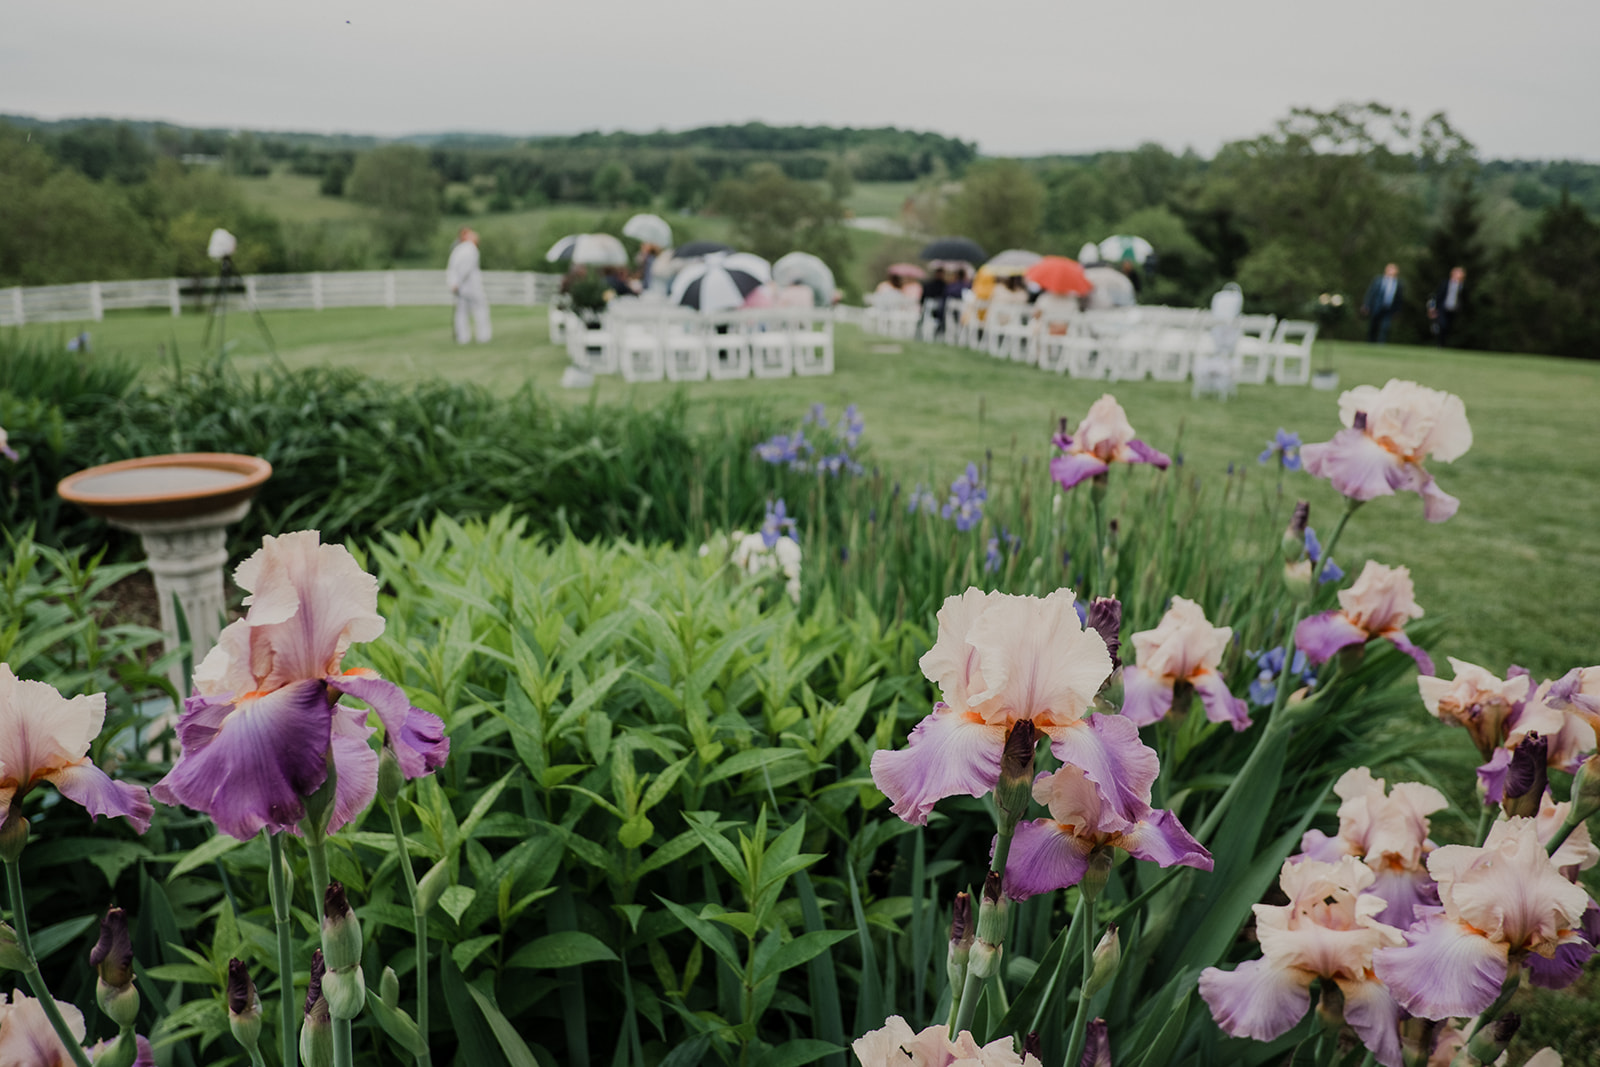 Irises are in bloom for a spring outdoor wedding ceremony at Blue Hill Farm in Waterford, VA.